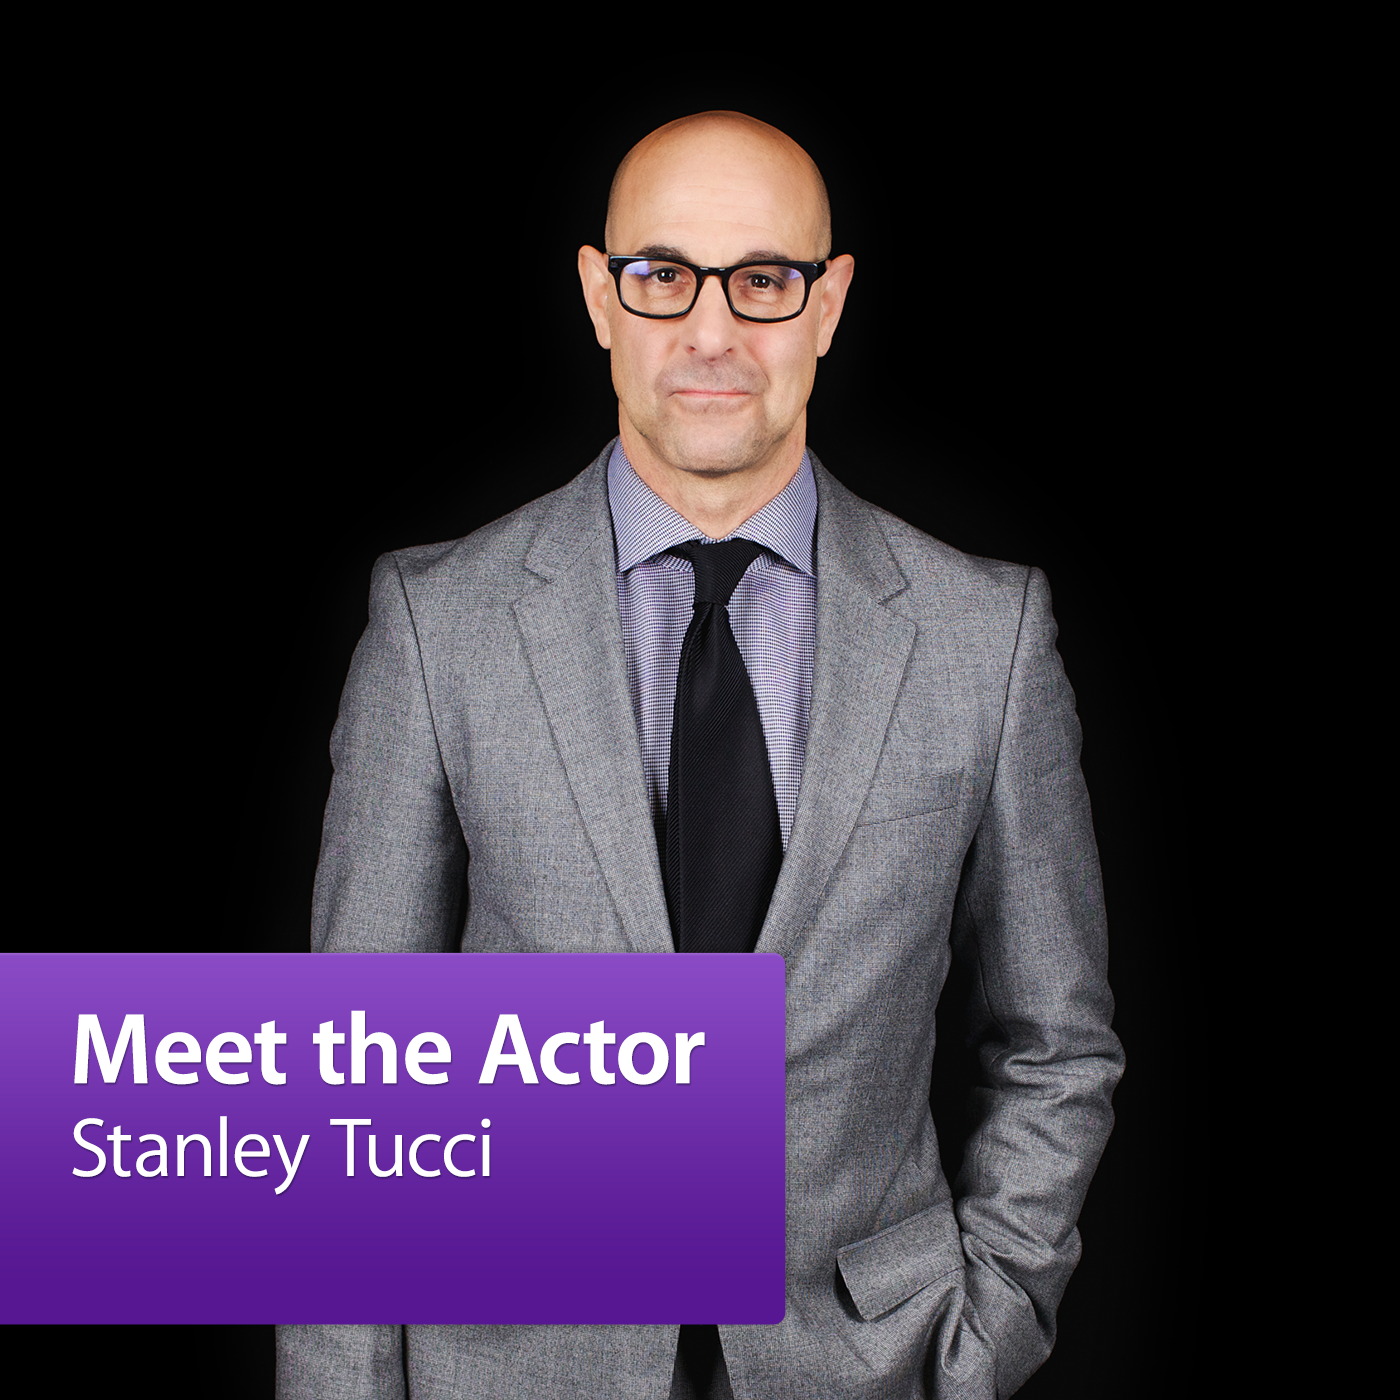 Stanley Tucci: Meet the Actor